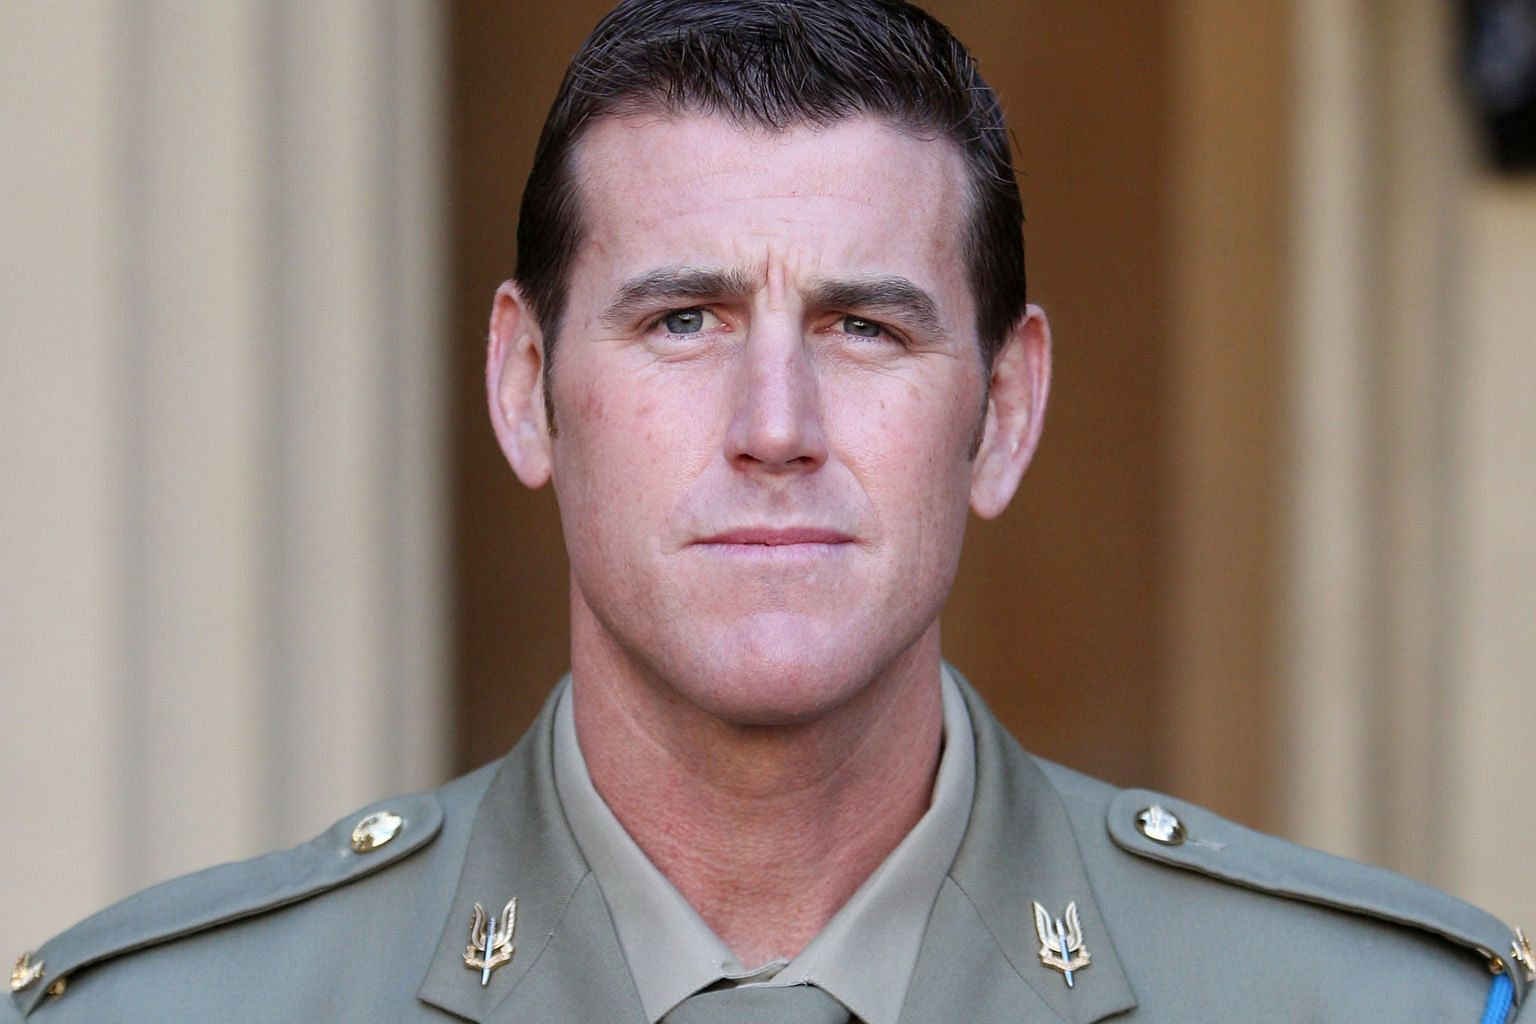 Mr Ben Roberts-Smith, who faces misconduct allegations, received the Victoria Cross in 2011 for bravery in Afghanistan.